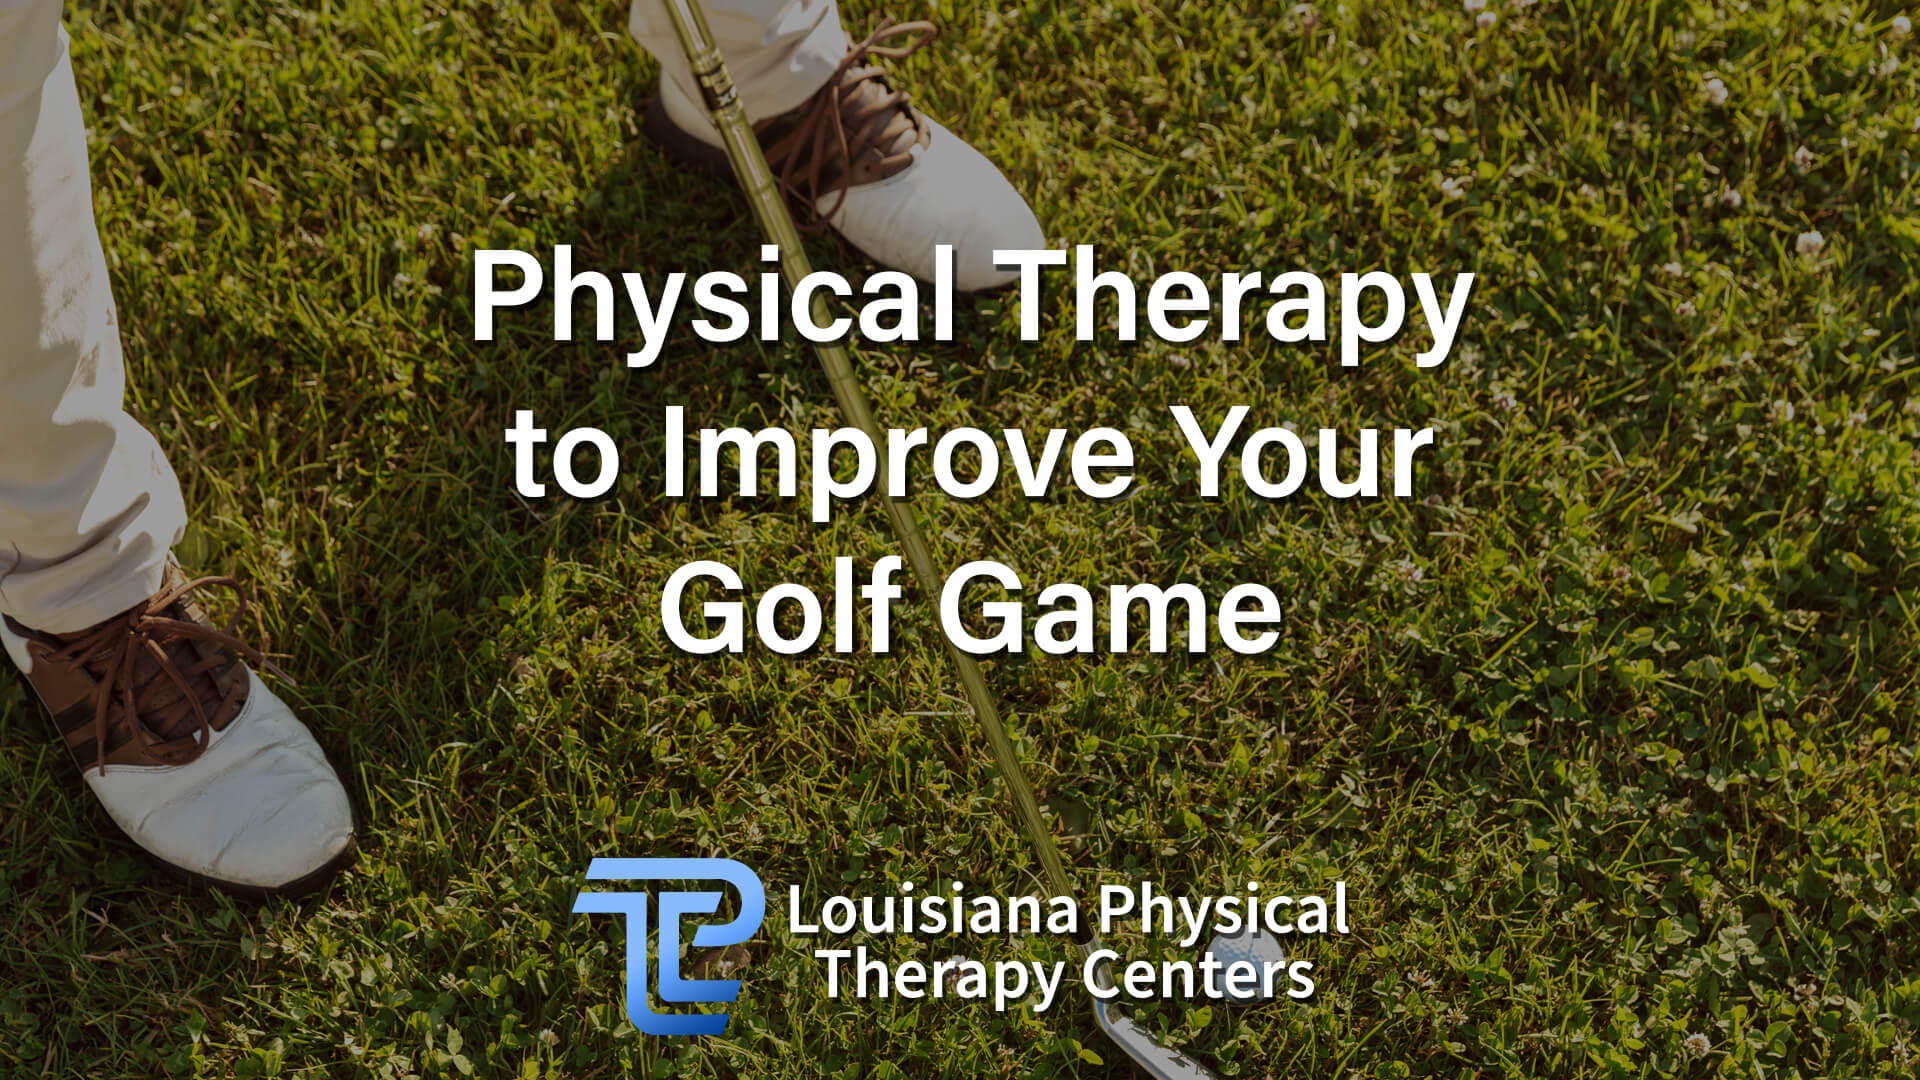 Physical Therapy to Improve Your Golf Game